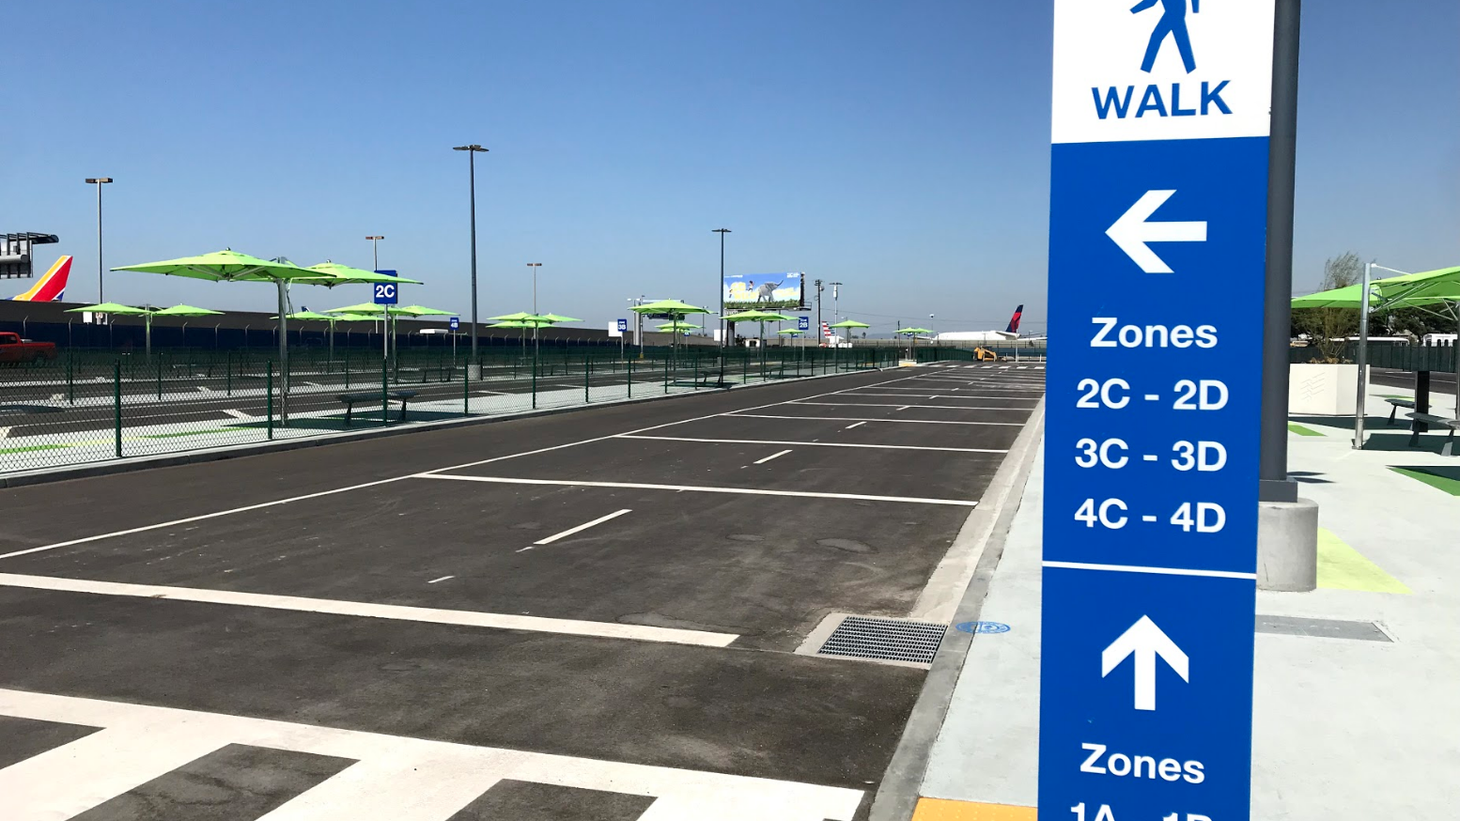 The new Uber, Lyft, Opoli and taxi pickup area at LAX